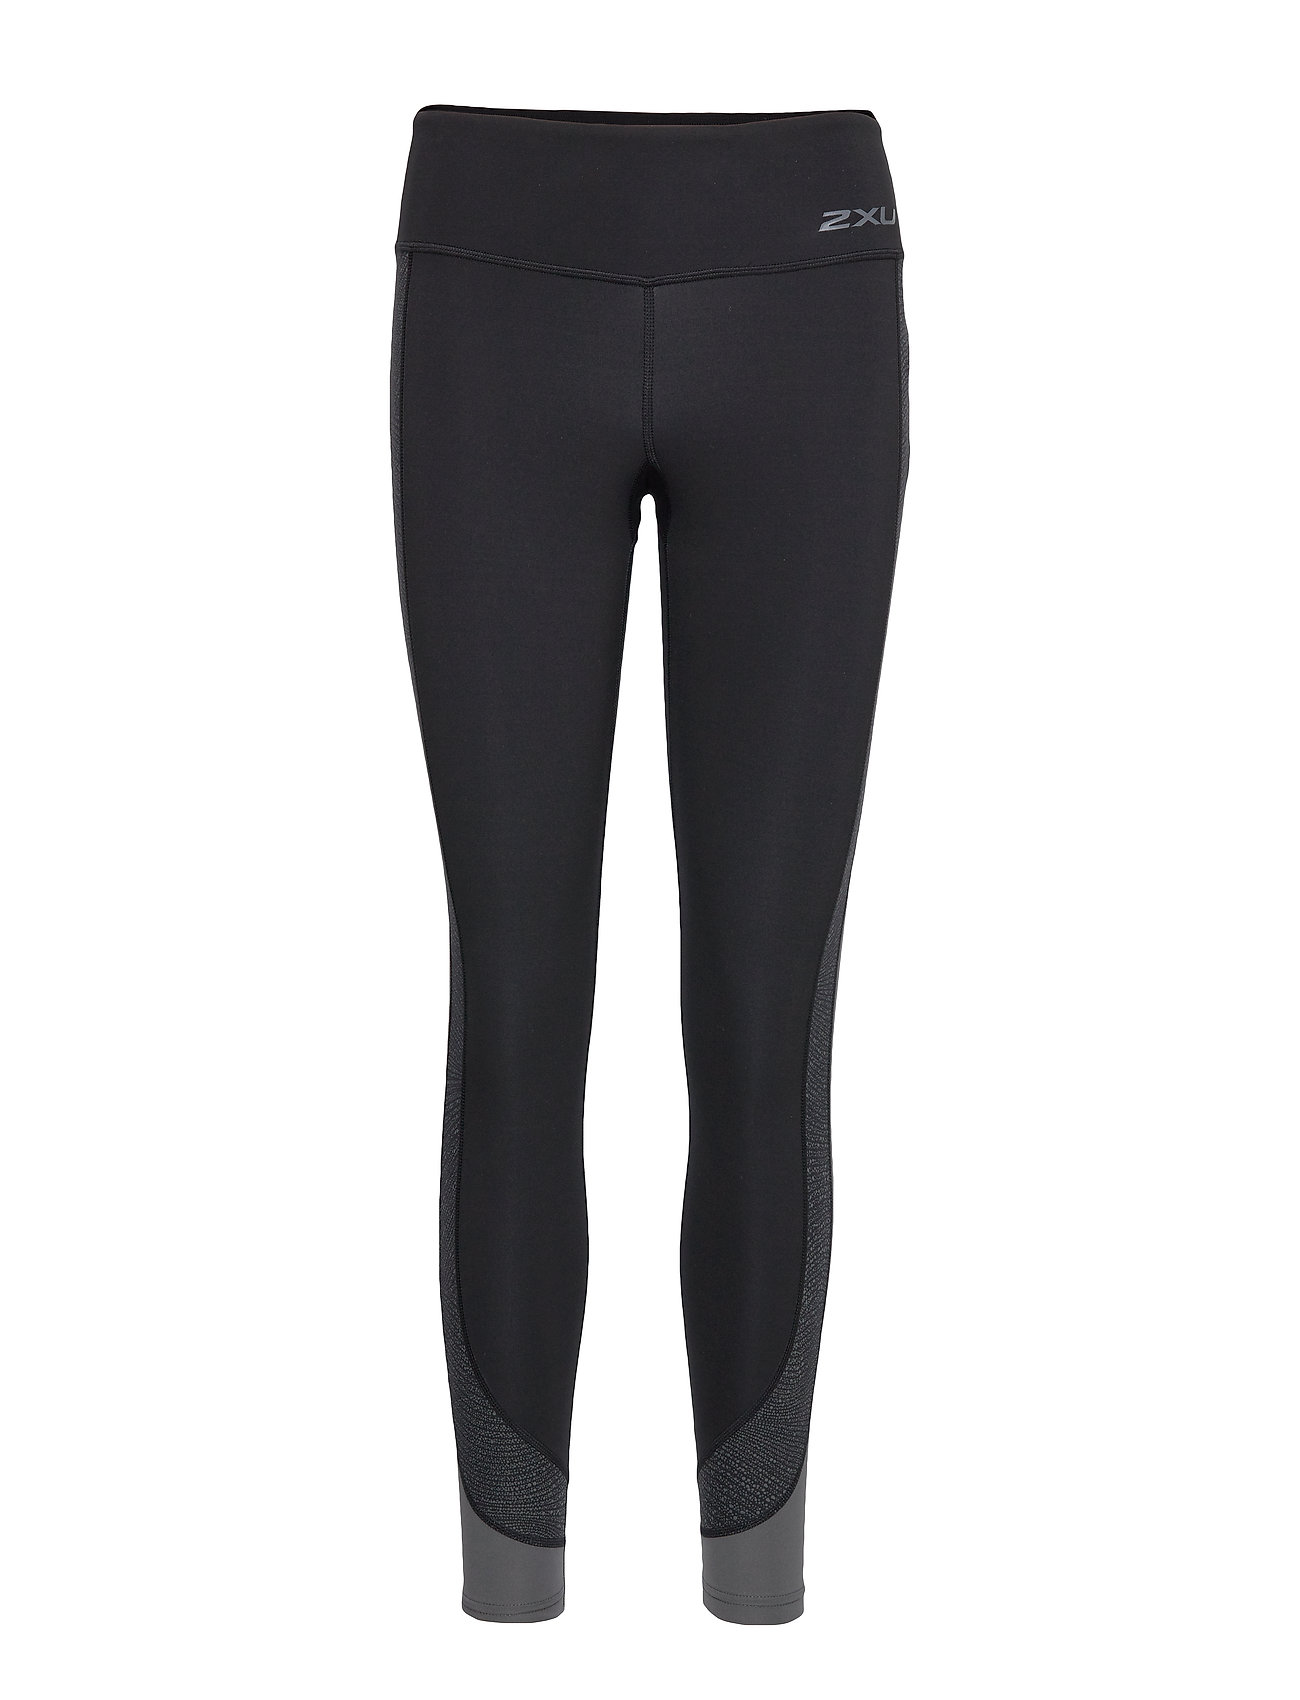 2XU Fitness Mid-Rise Line Up Tight - BLACK/WAVE SPOT CHARCOAL